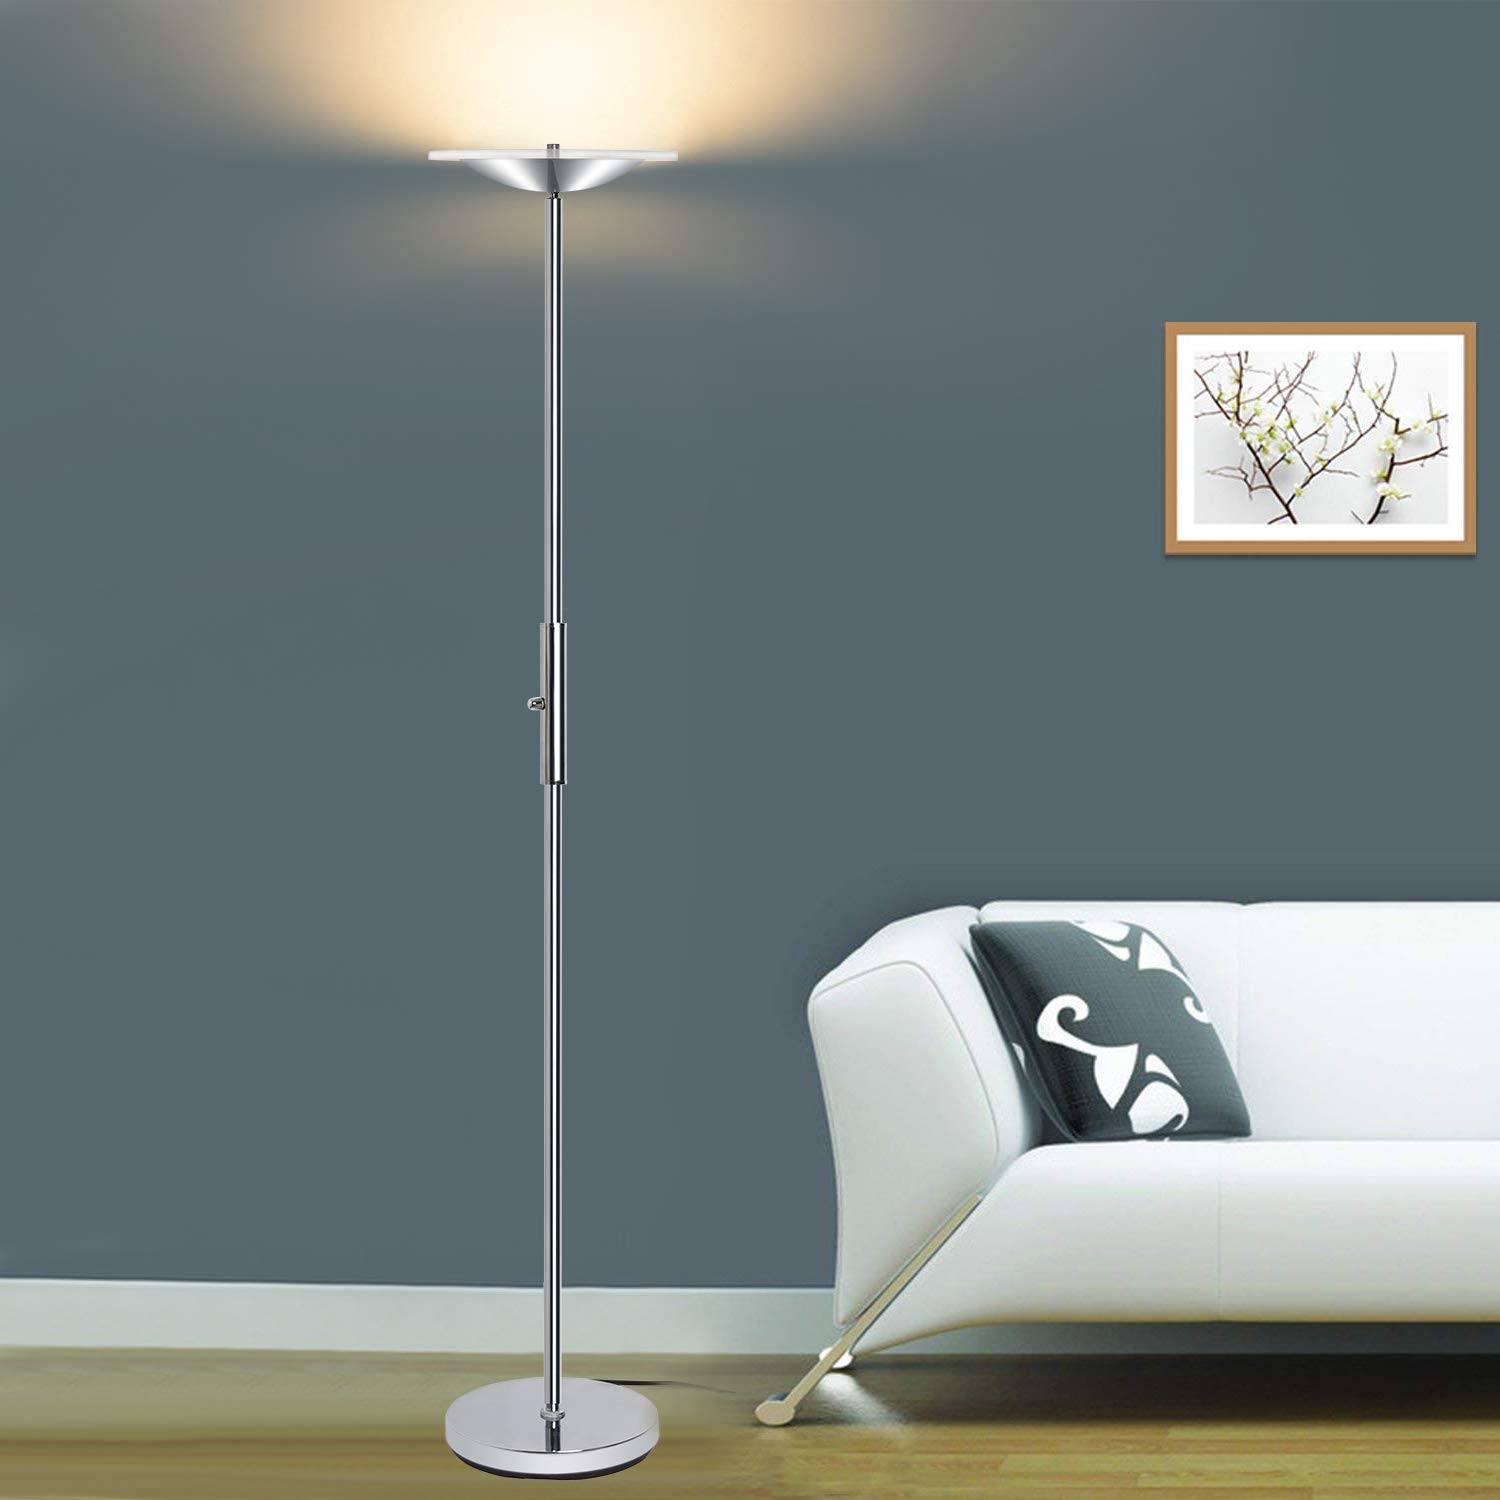 LED Torchiere Floor Lamp, Sunllipe Super Bright 18W Dimmable Uplight Adjustable Floor Lamp, Modern 70.5'' Tall Standing Pole Light, Compatible with Wall Switch for Reading, Office, Living Room, Bedroom by sunllipe (Image #7)